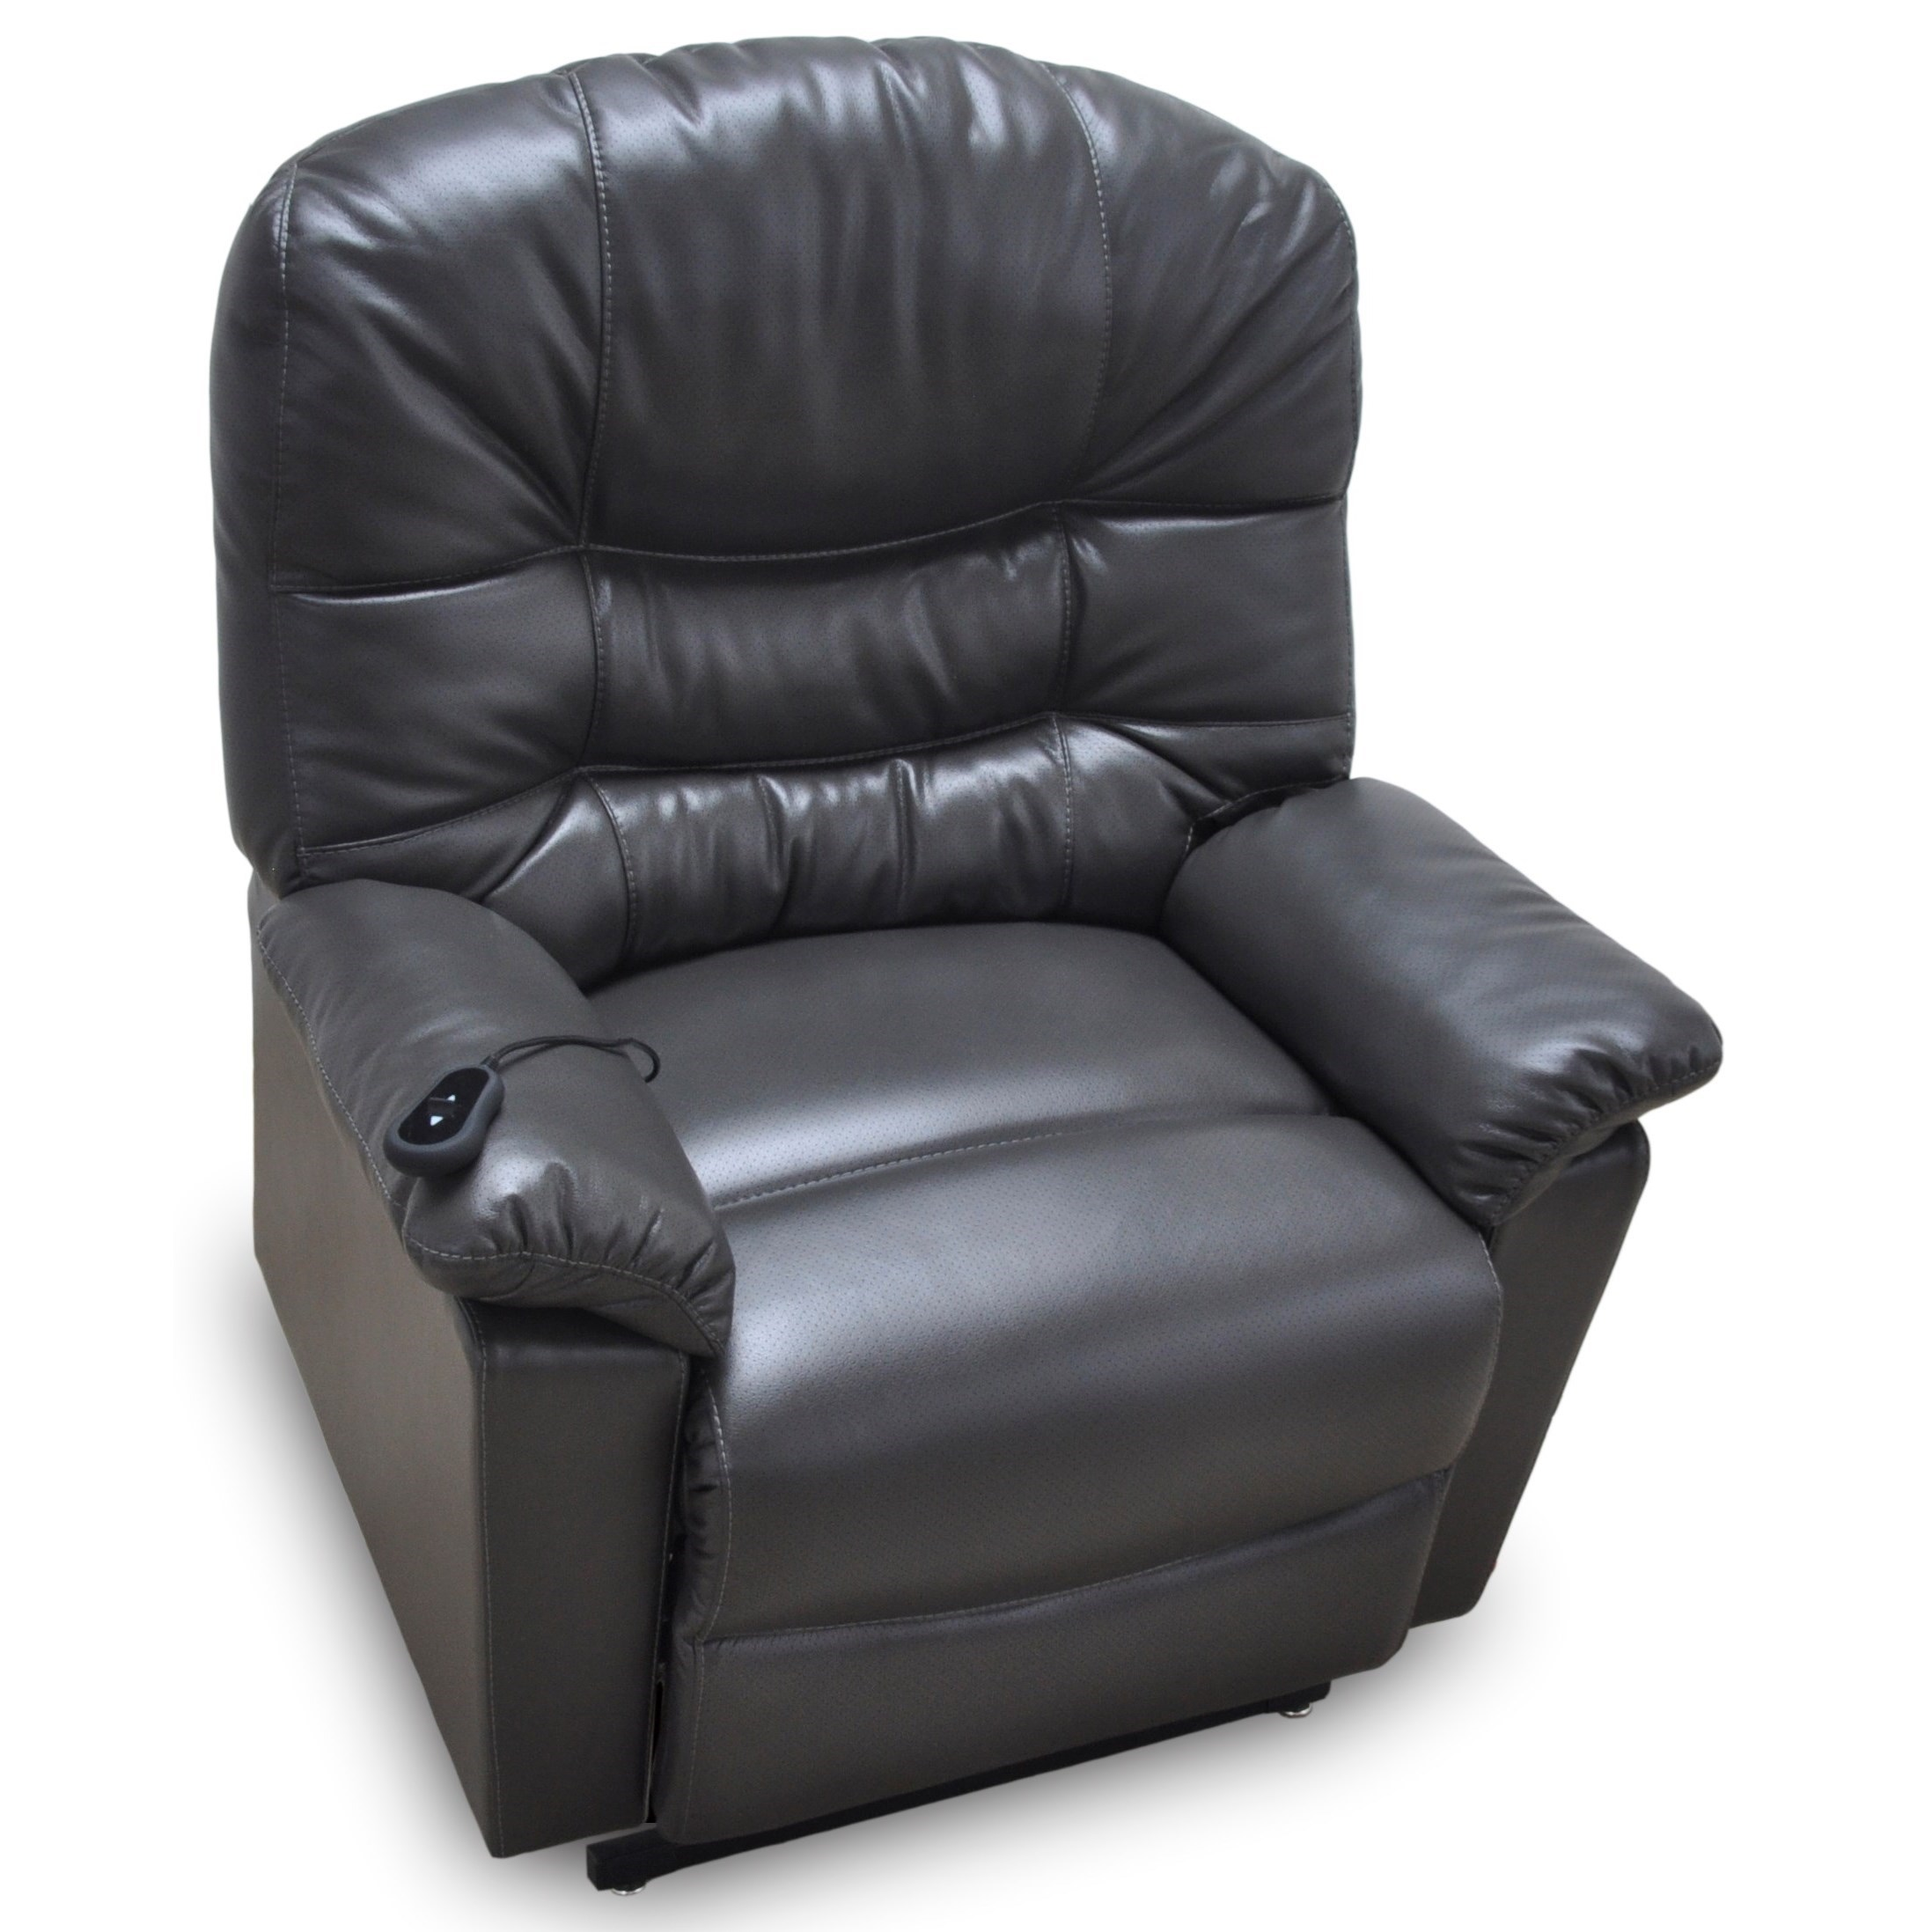 Franklin Recliners Power Lift Recliner by Franklin at Turk Furniture